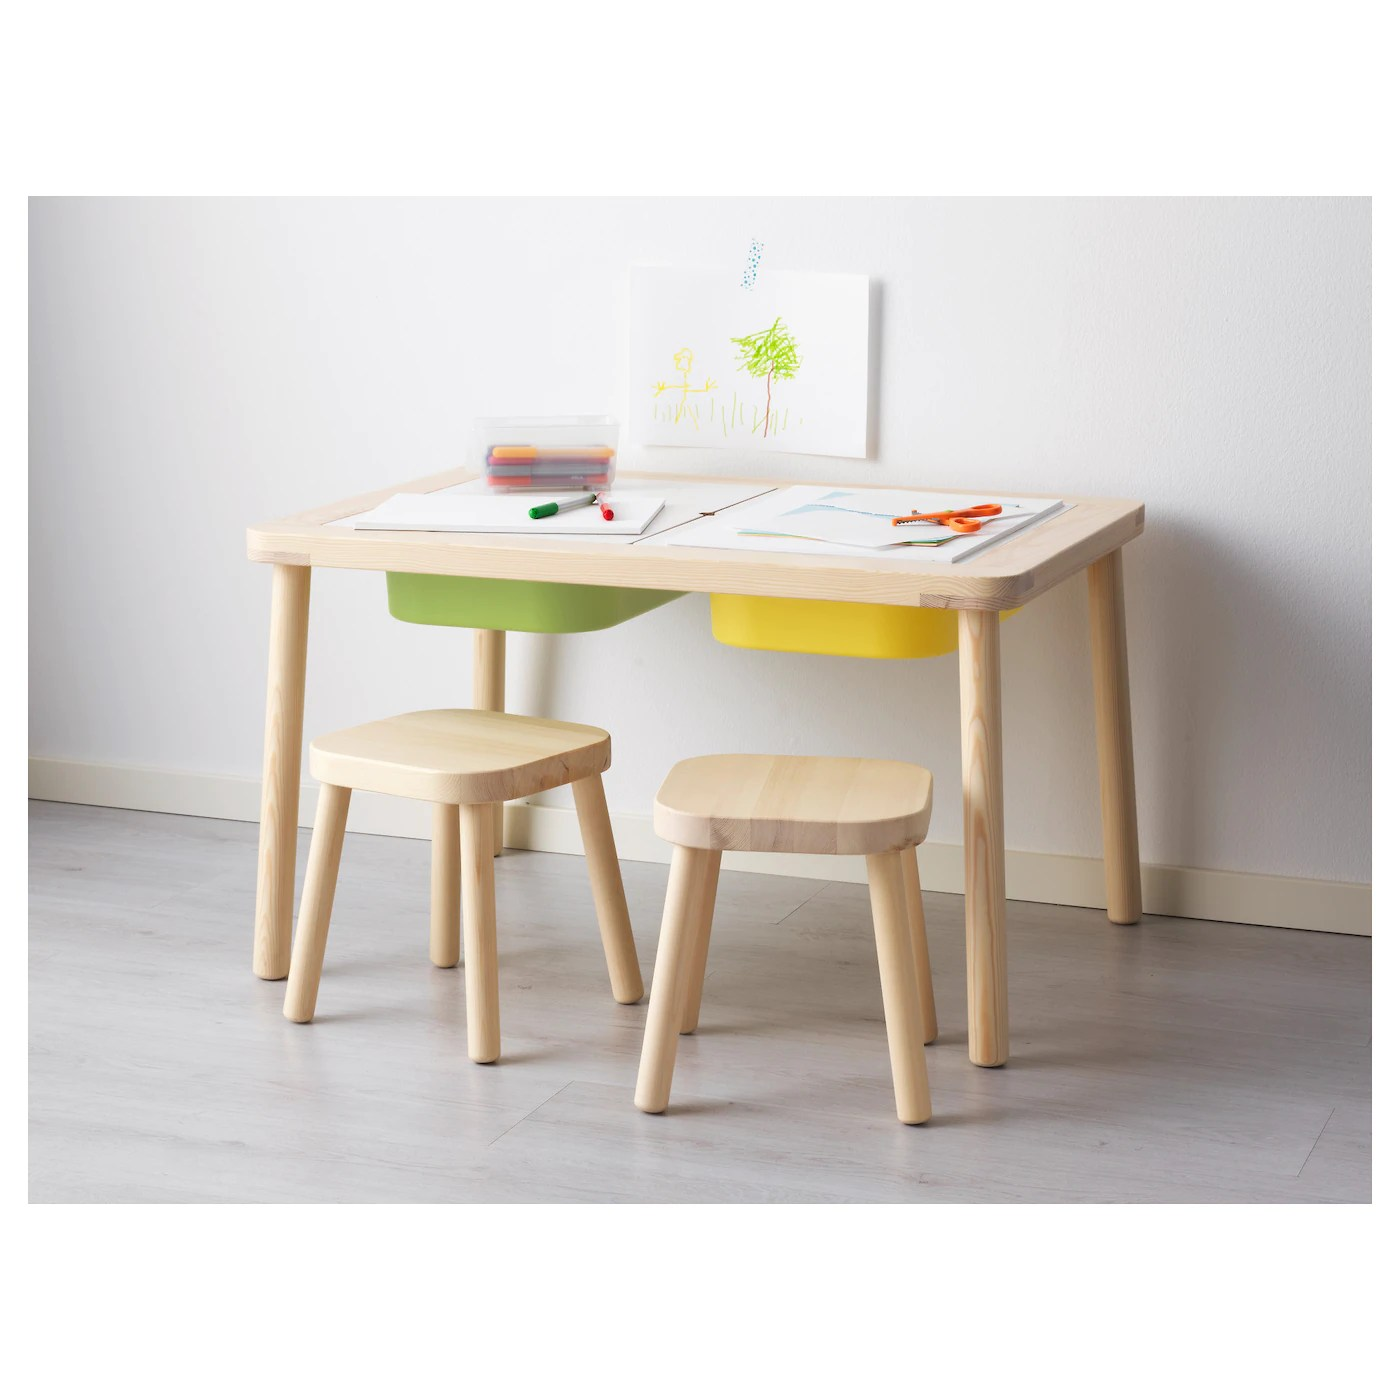 ikea childrens chairs overstock accent flisat children 39s table 83 x 58 cm